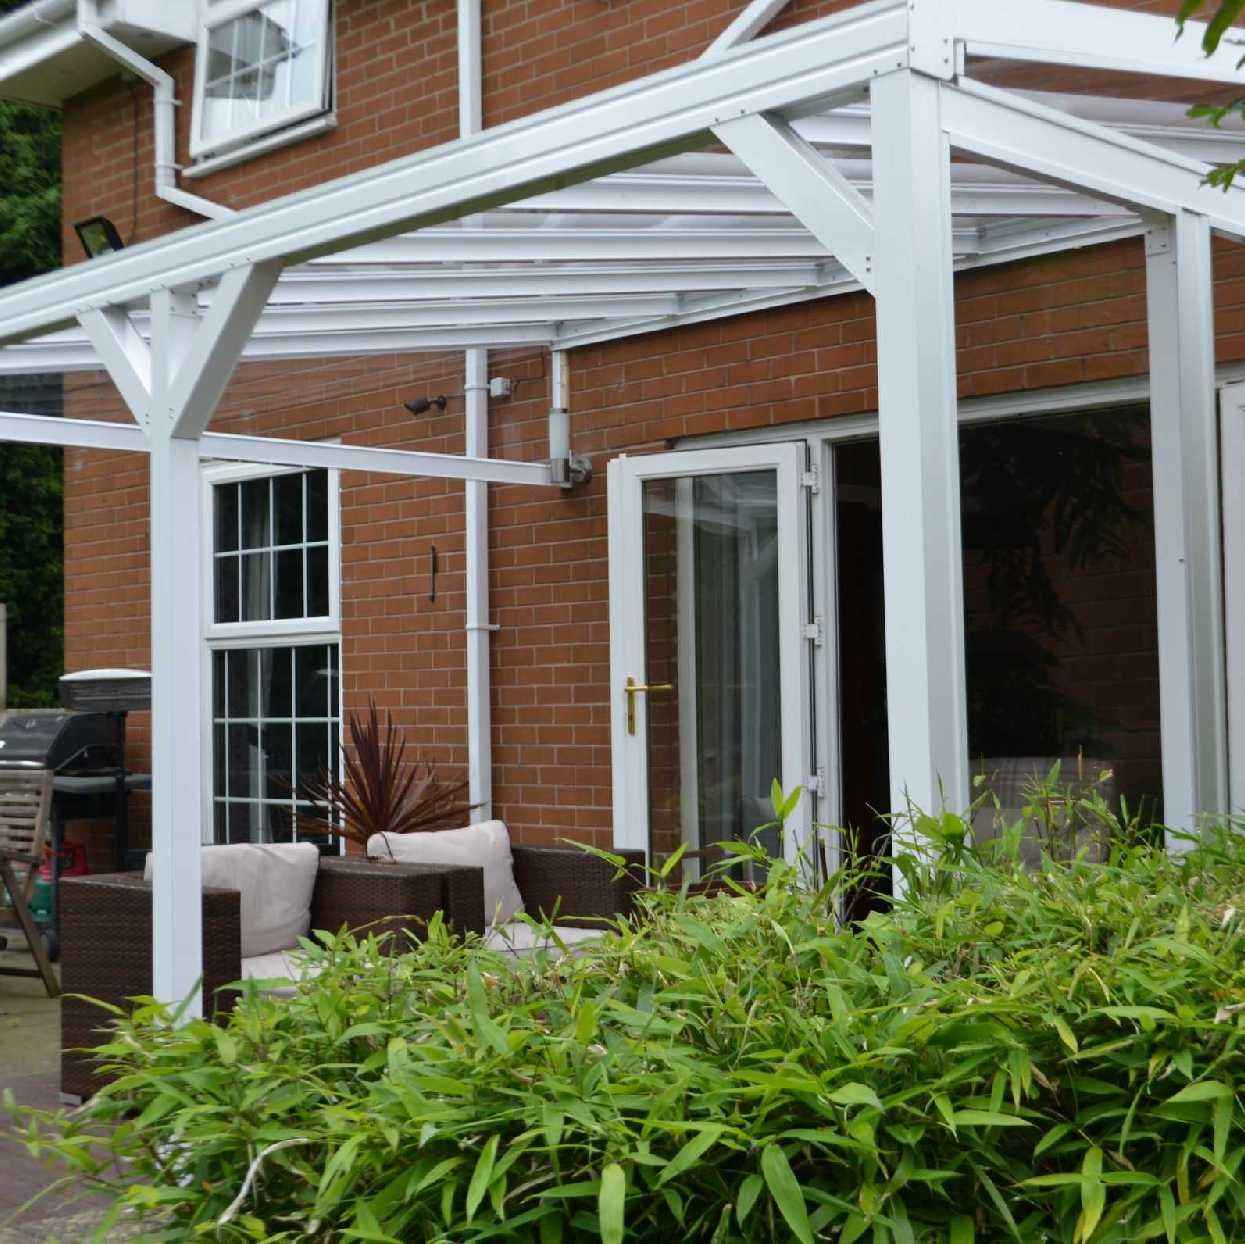 Omega Smart Lean-To Canopy with 6mm Glass Clear Plate Polycarbonate Glazing - 4.9m (W) x 1.5m (P), (3) Supporting Posts from Omega Build